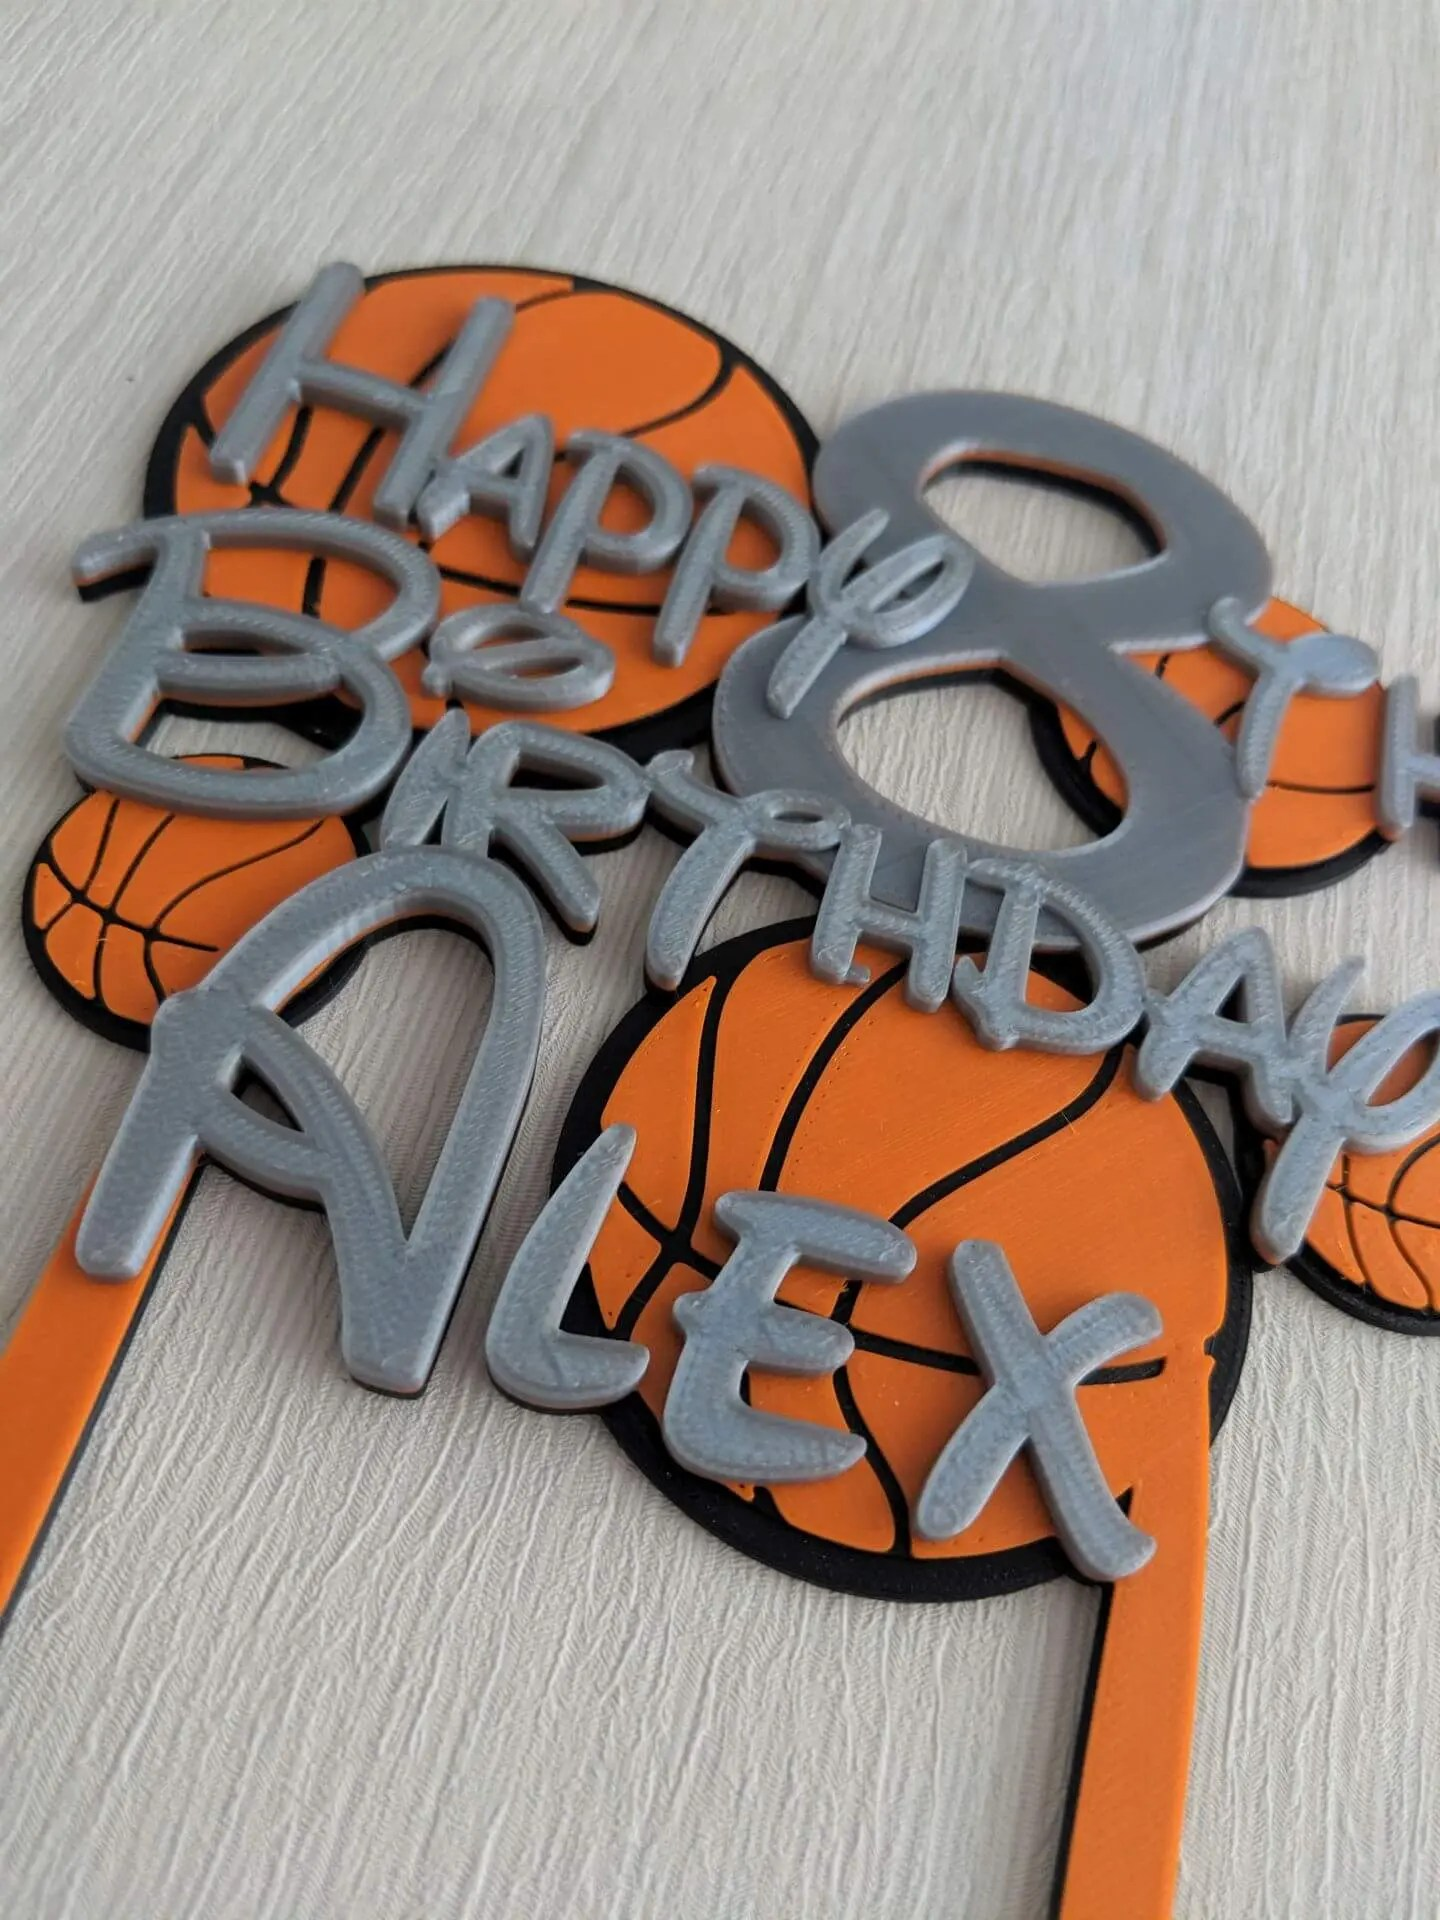 Phenomenal Personalised Basketball Birthday Cake Topper Dalewood Designs Gb Birthday Cards Printable Nowaargucafe Filternl